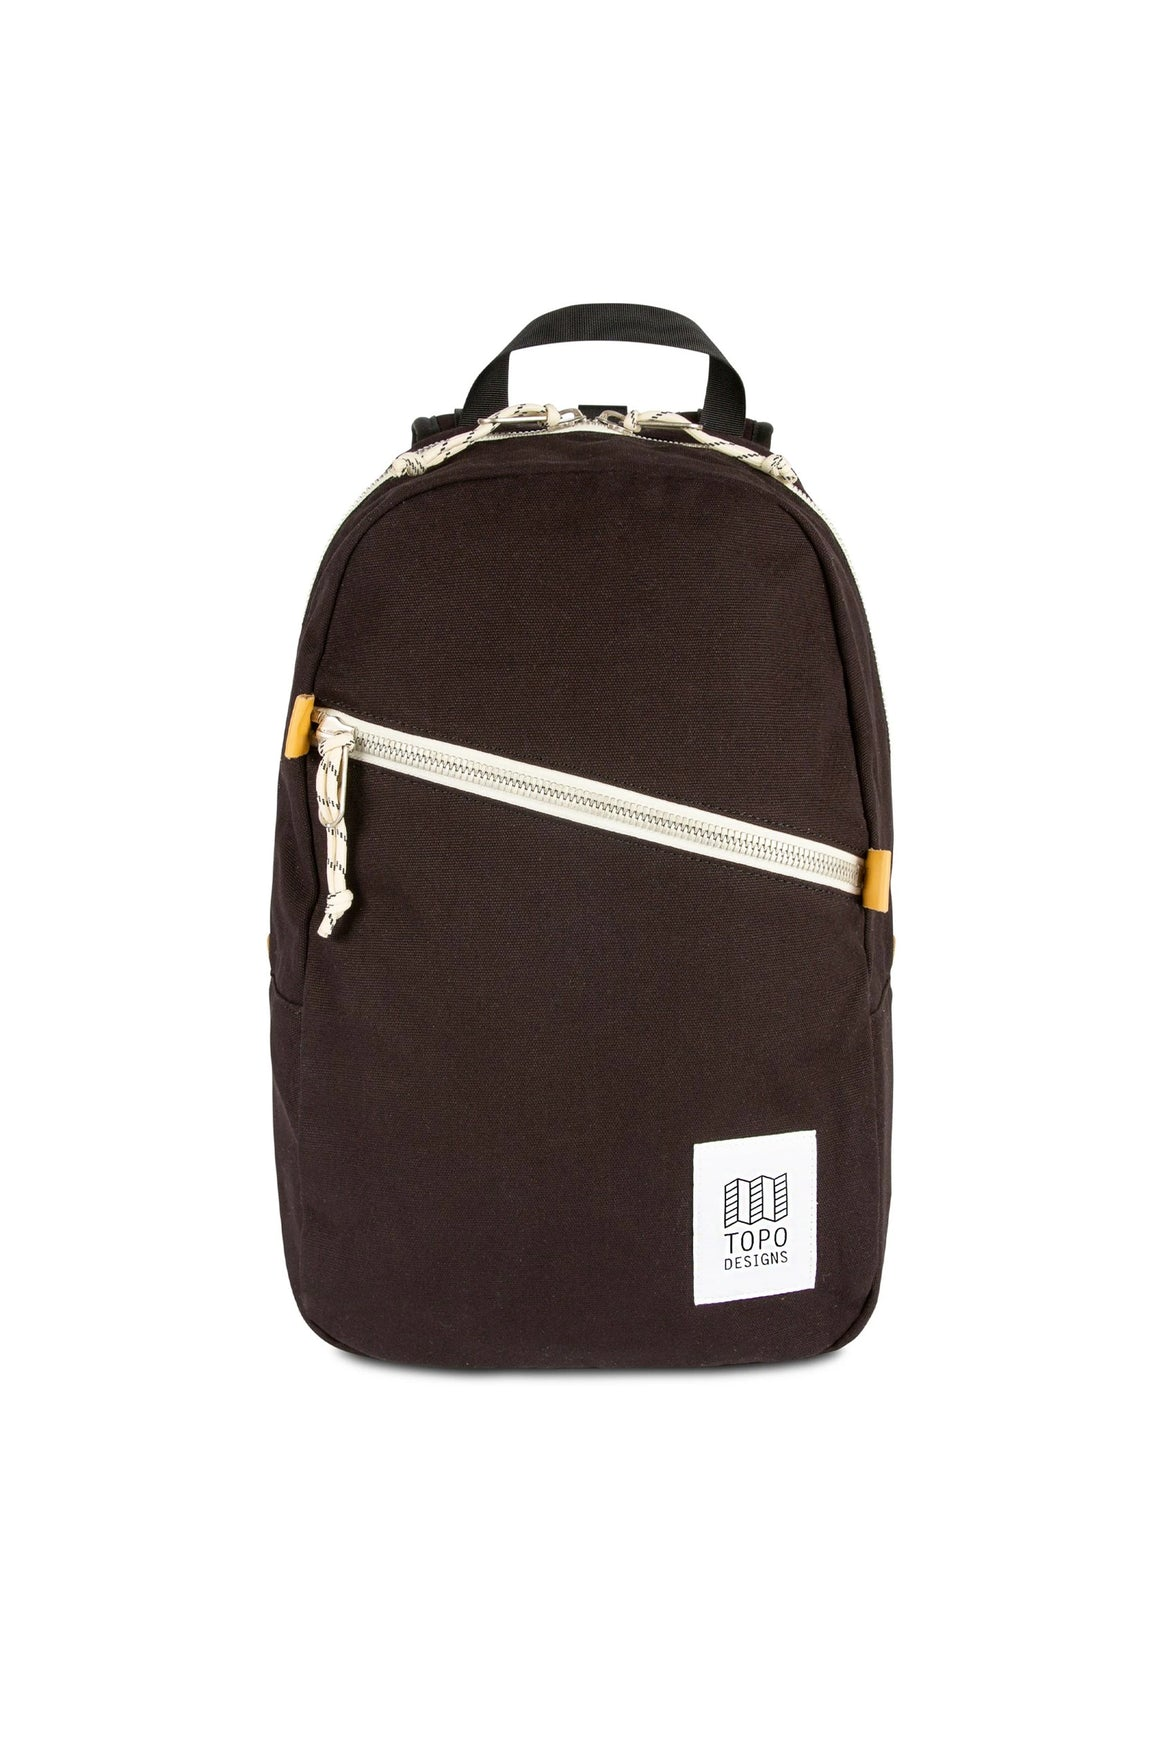 Topo Designs Light Pack in Black Canvas